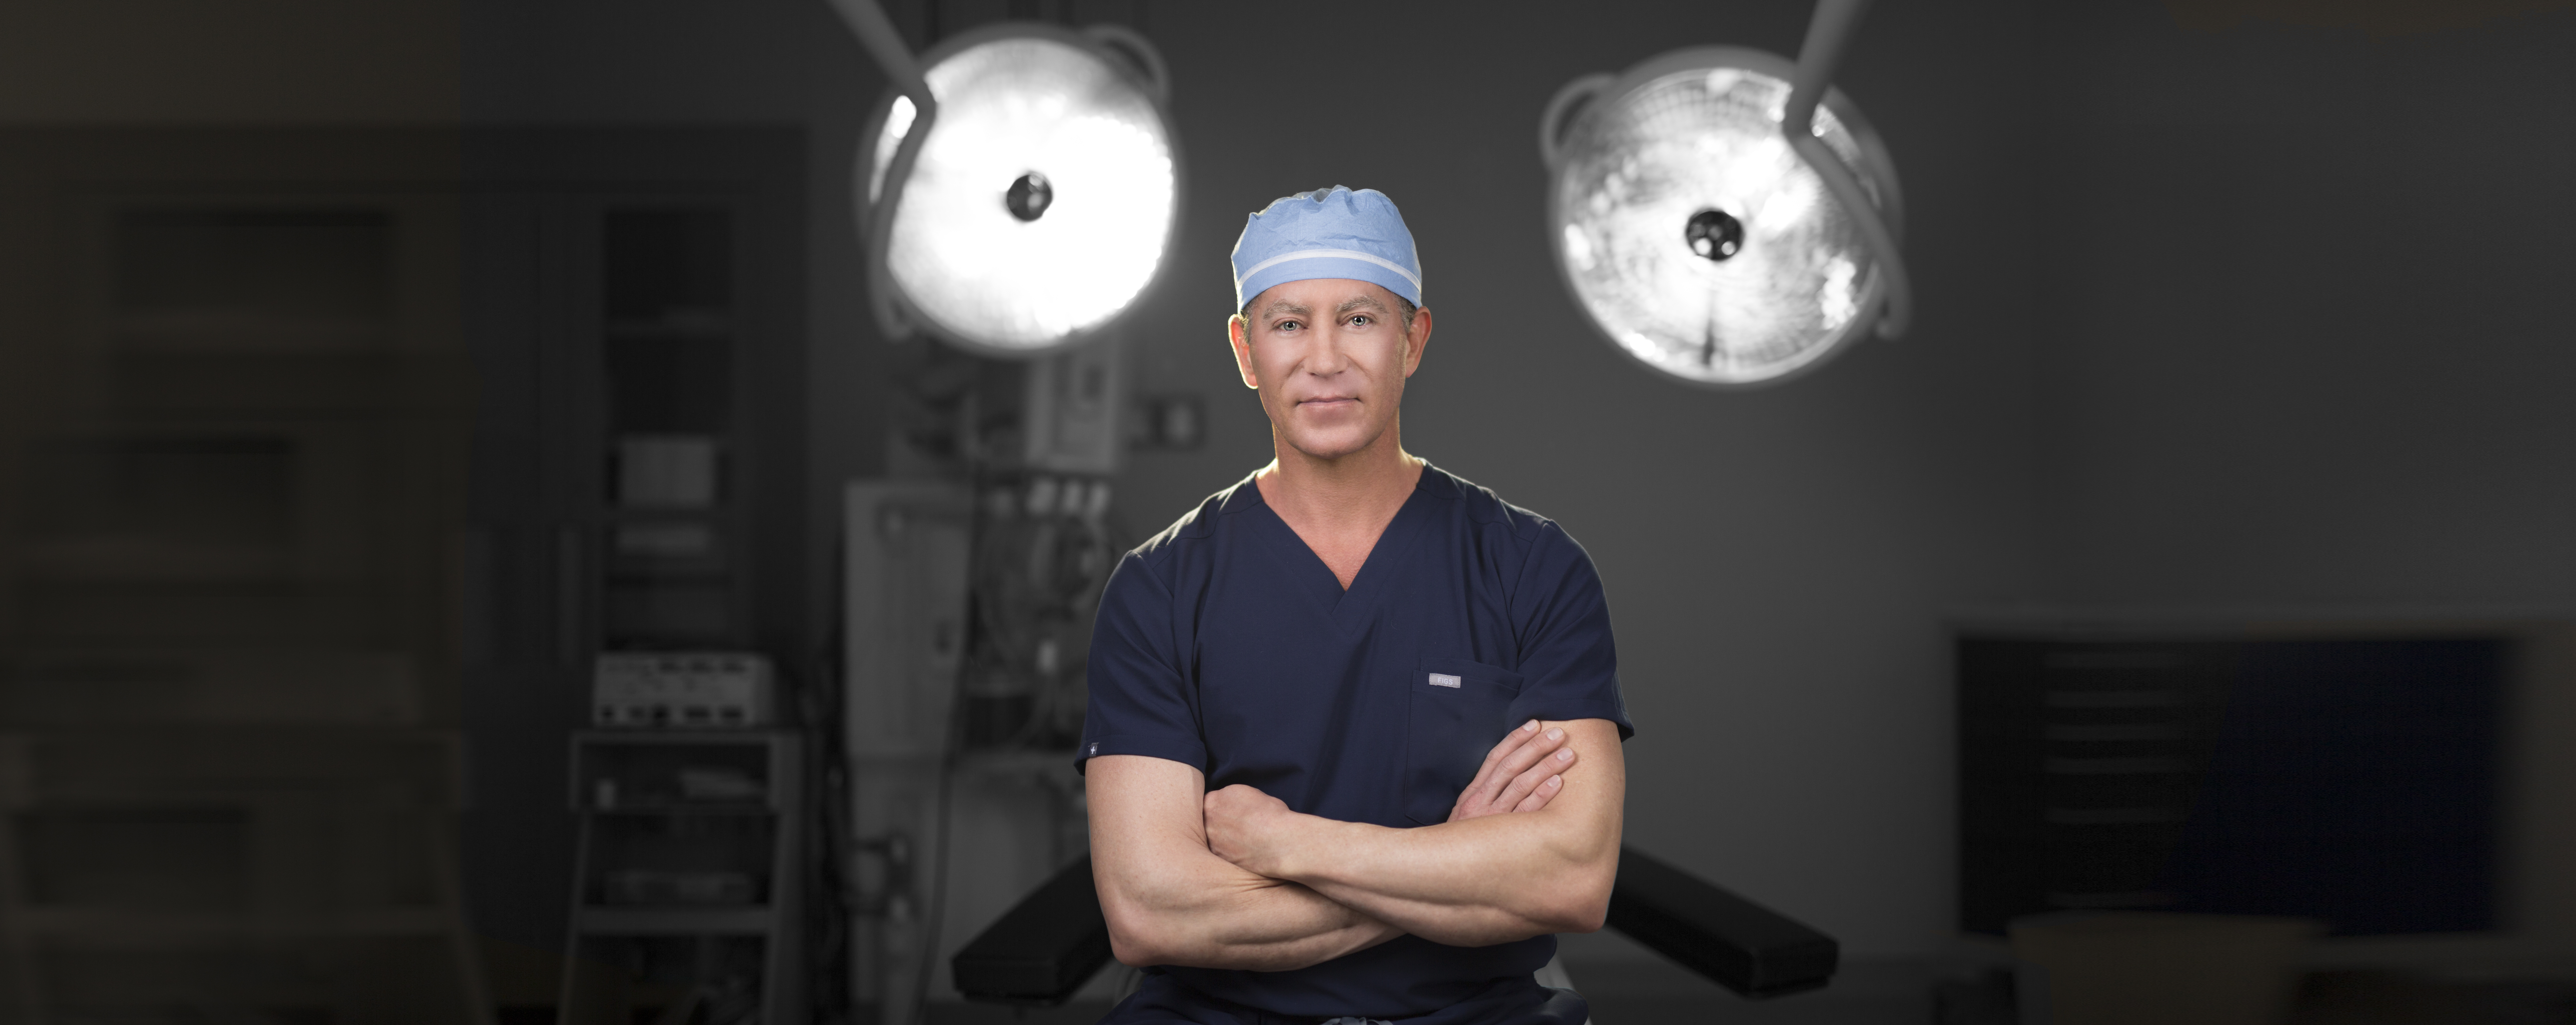 The Rose Clinic reviews   Plastic Surgeons at 320 W River Park Dr - Provo UT